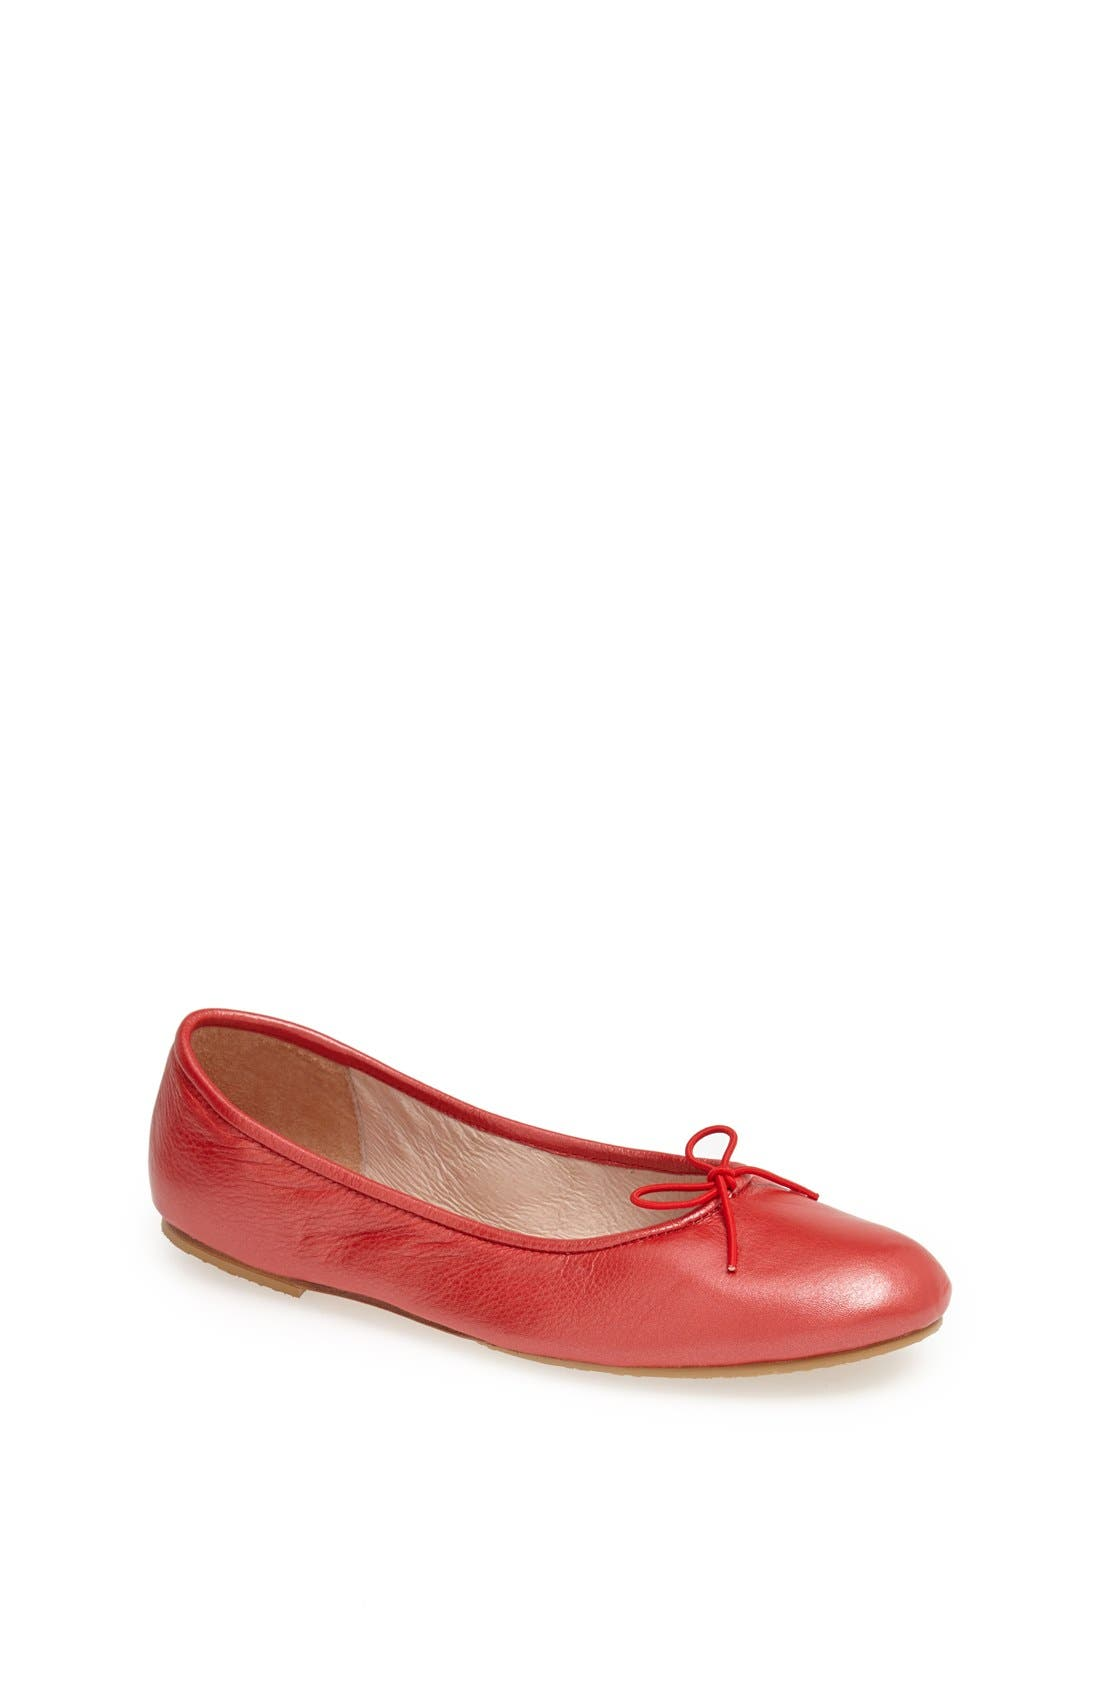 Alternate Image 1 Selected - Bloch 'Arabella' Ballet Flat (Little Kid & Big Kid)